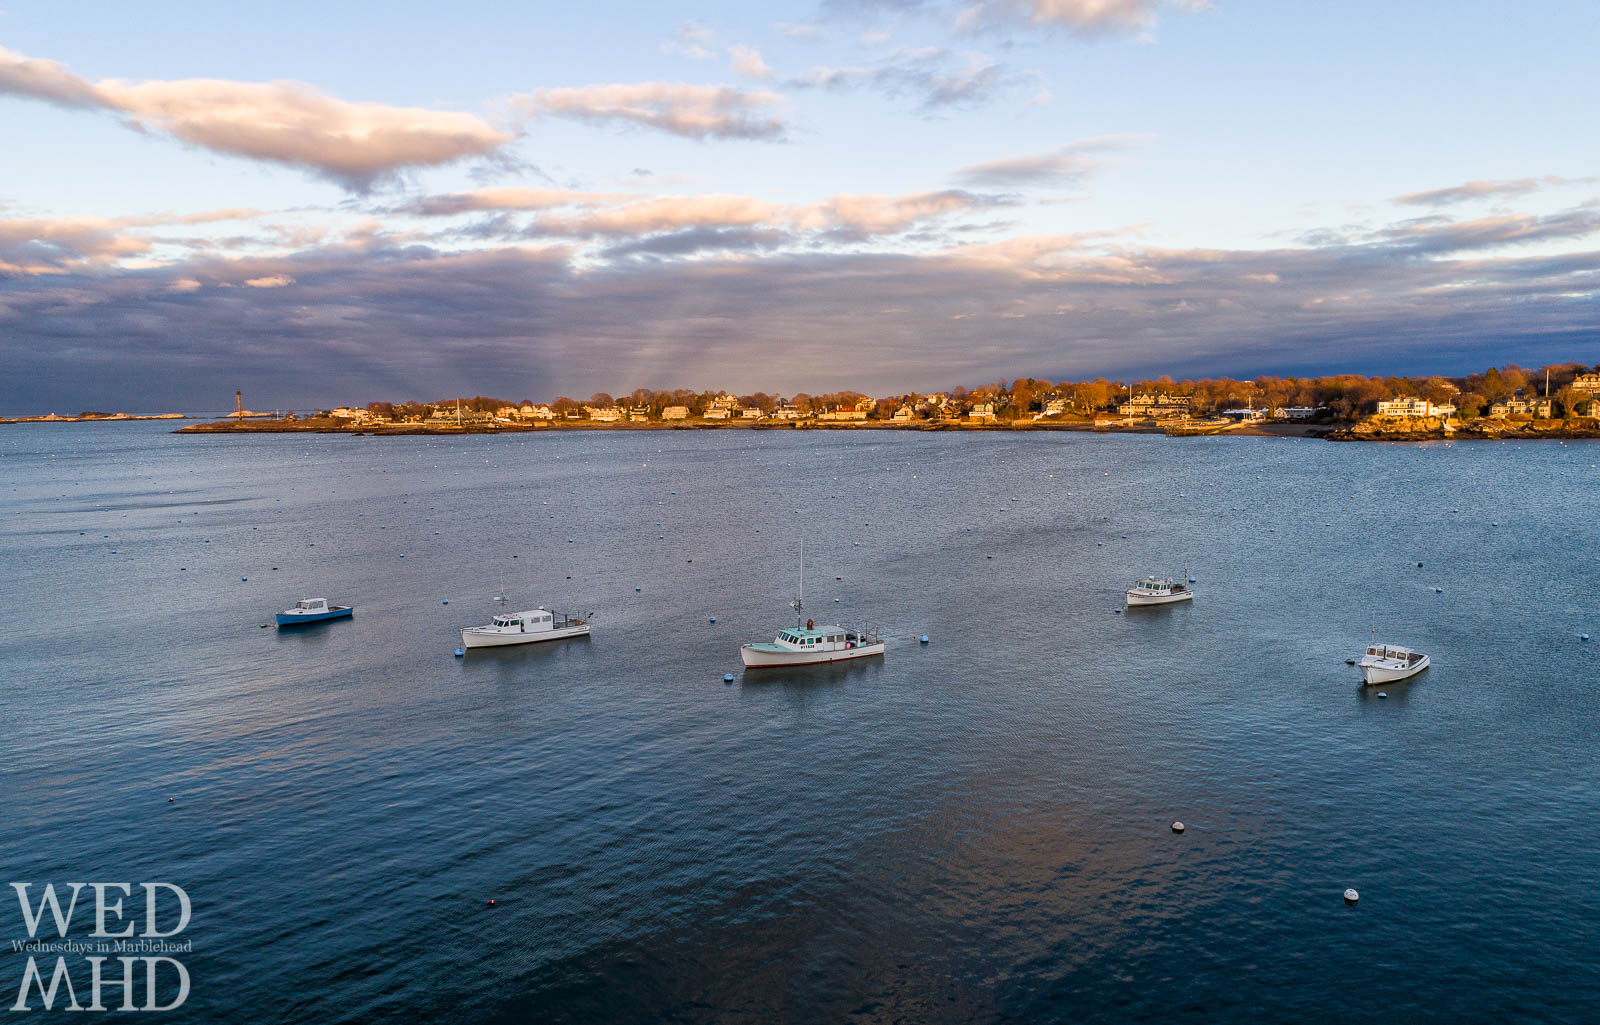 The working boats in Marblehead Harbor are backed by the golden light of sunset reflecting off Marblehead Neck